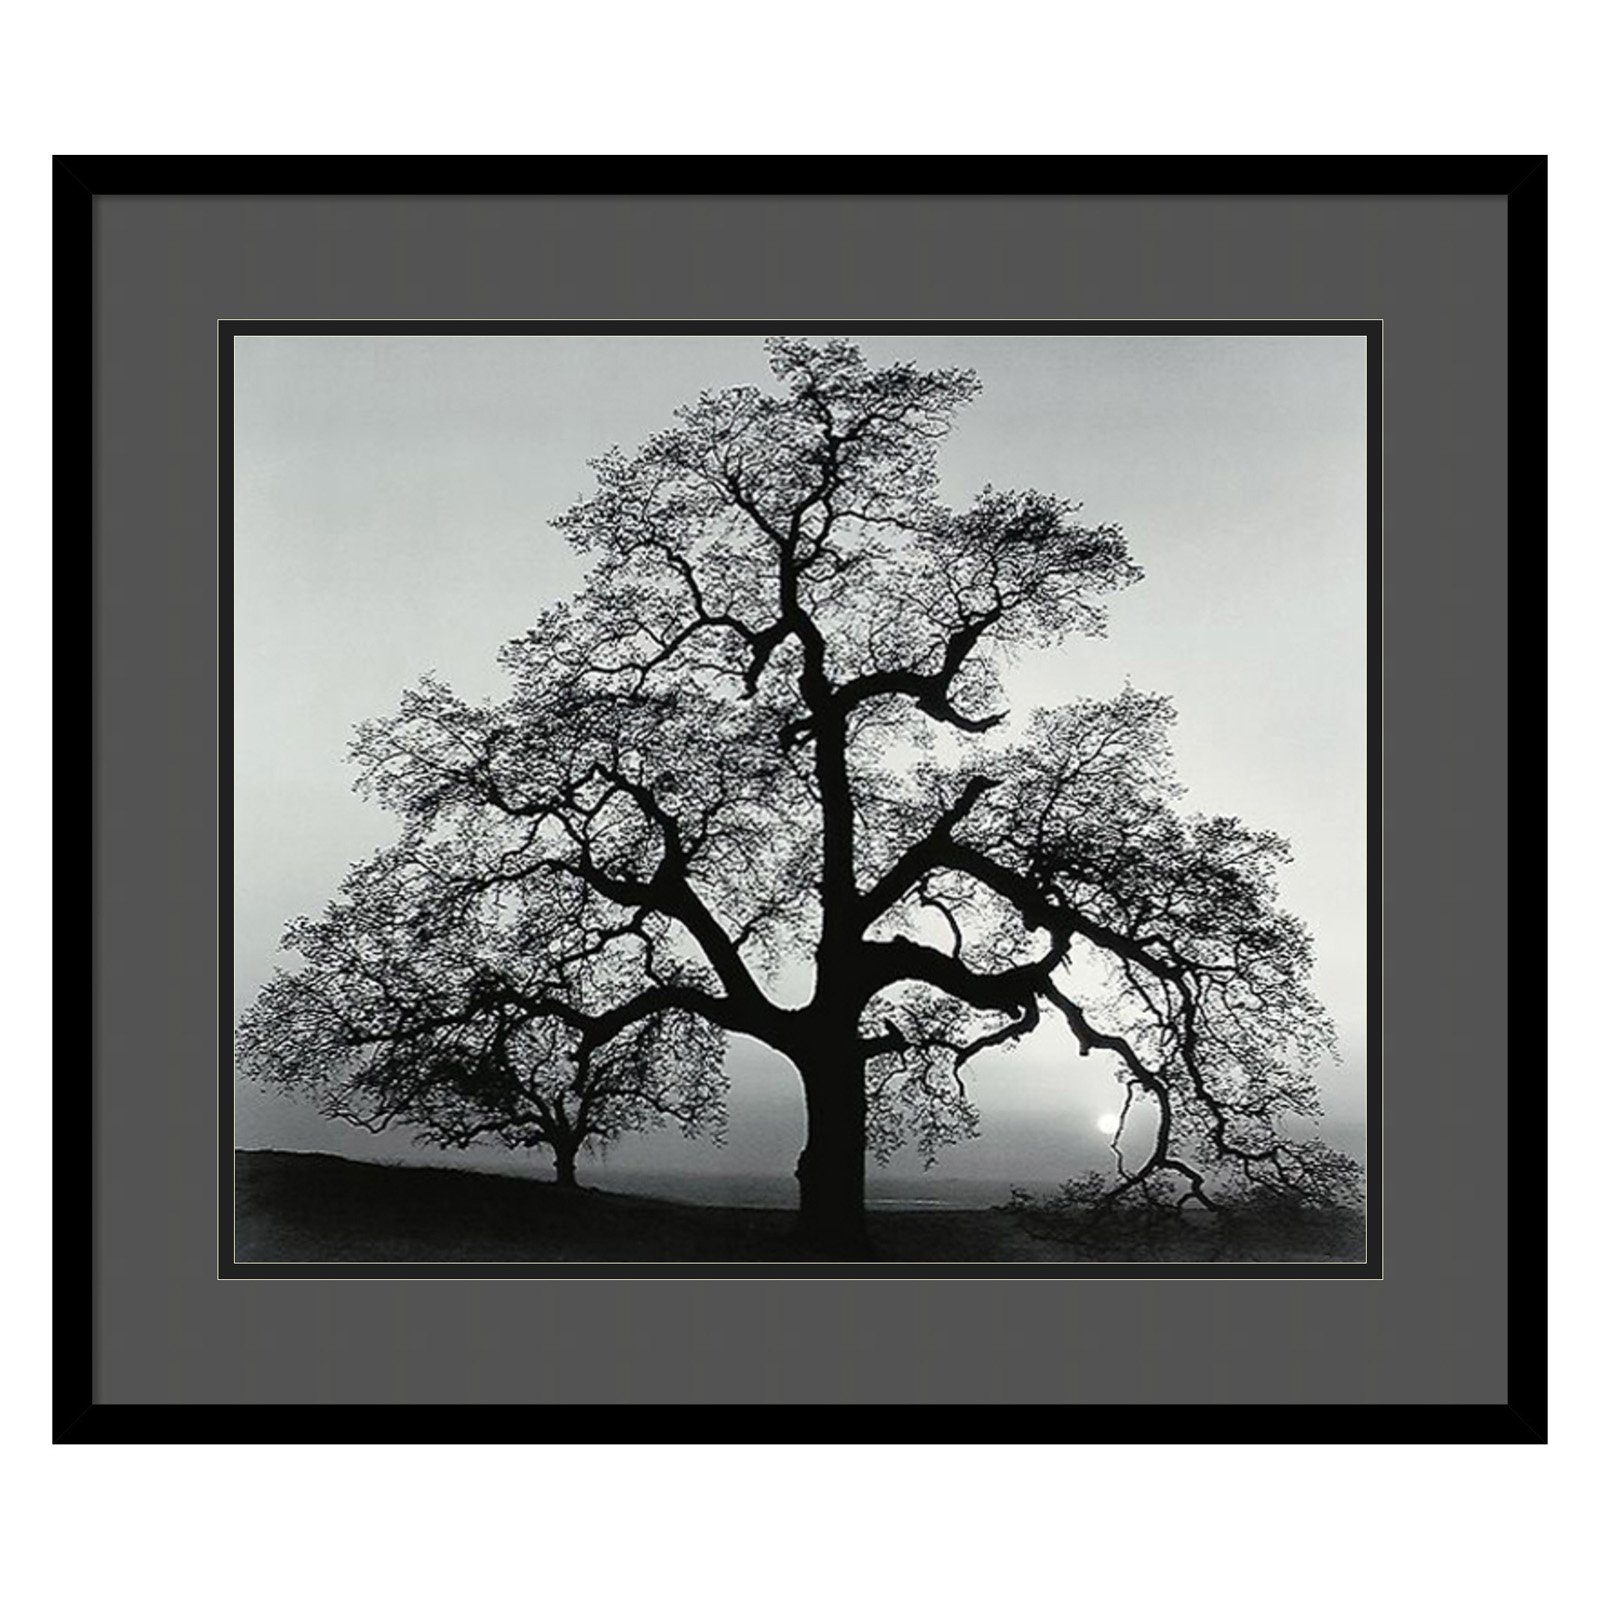 Oak Tree, Sunset City, California, 1962 Framed Wall Art by Ansel Adams